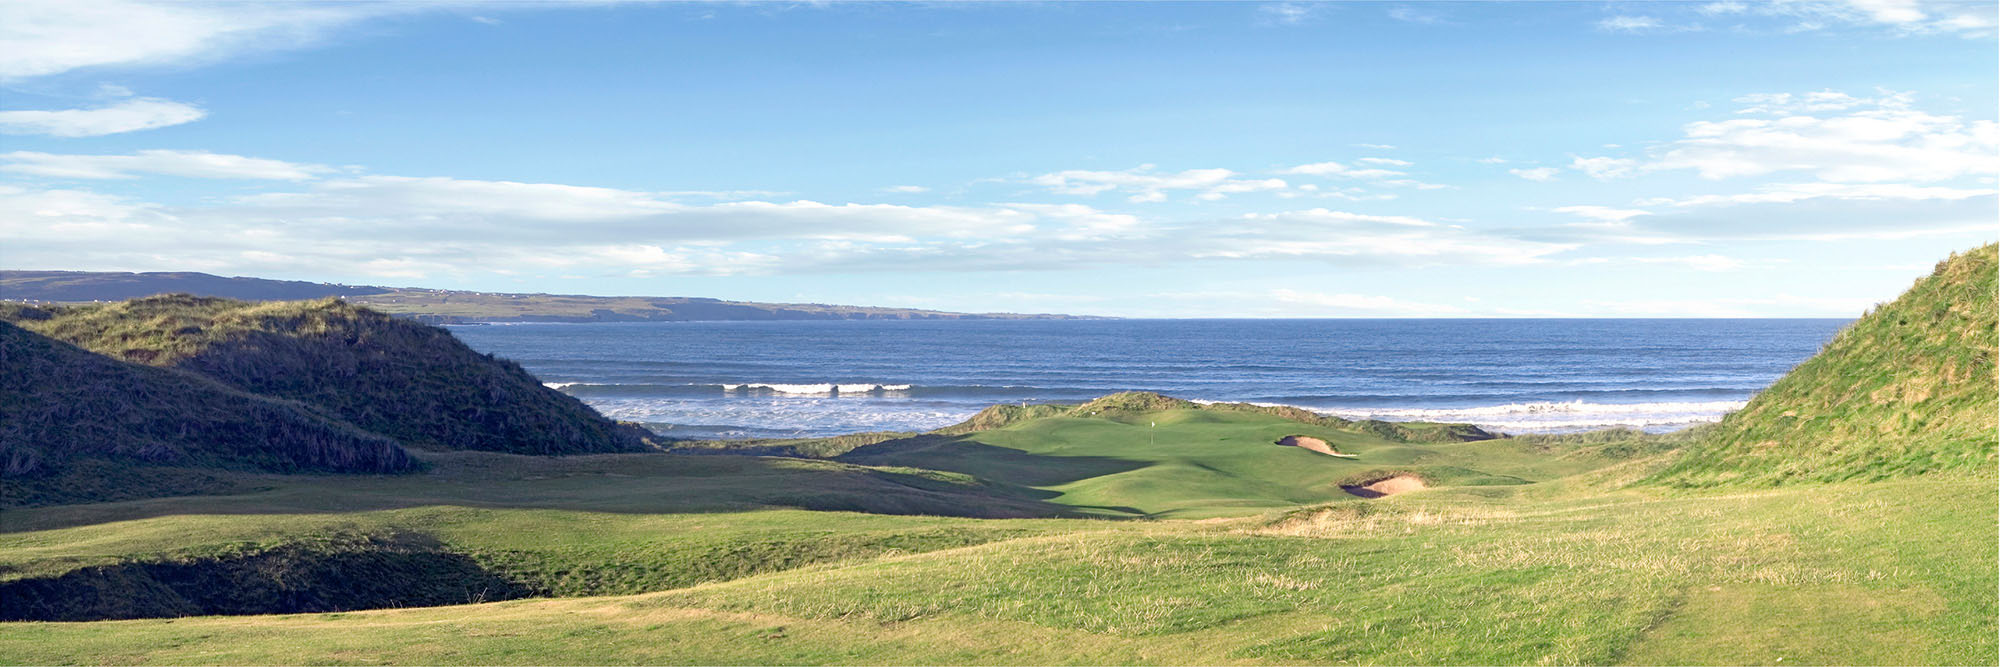 Golf Course Image - Lahinch No. 6